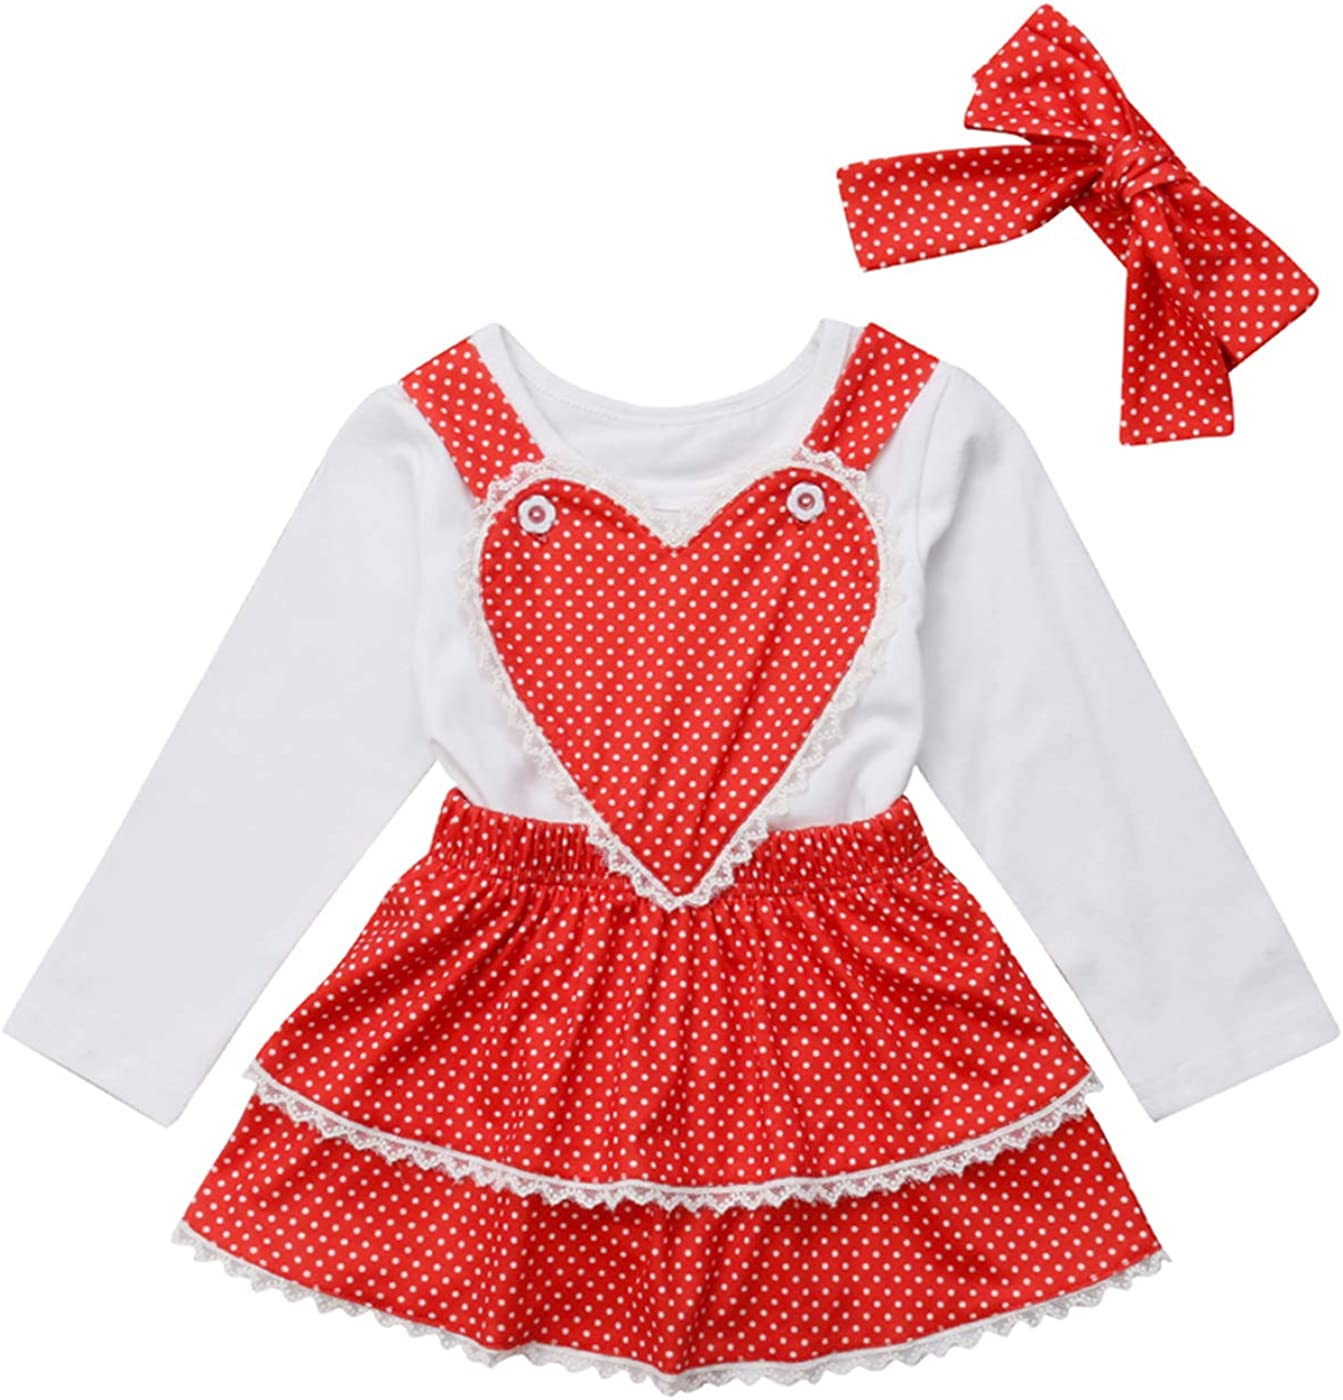 Toddler Baby Girl 3Pcs Valentines Day Outfit Long Sleeve Top+Suspender Red Dress and Headband